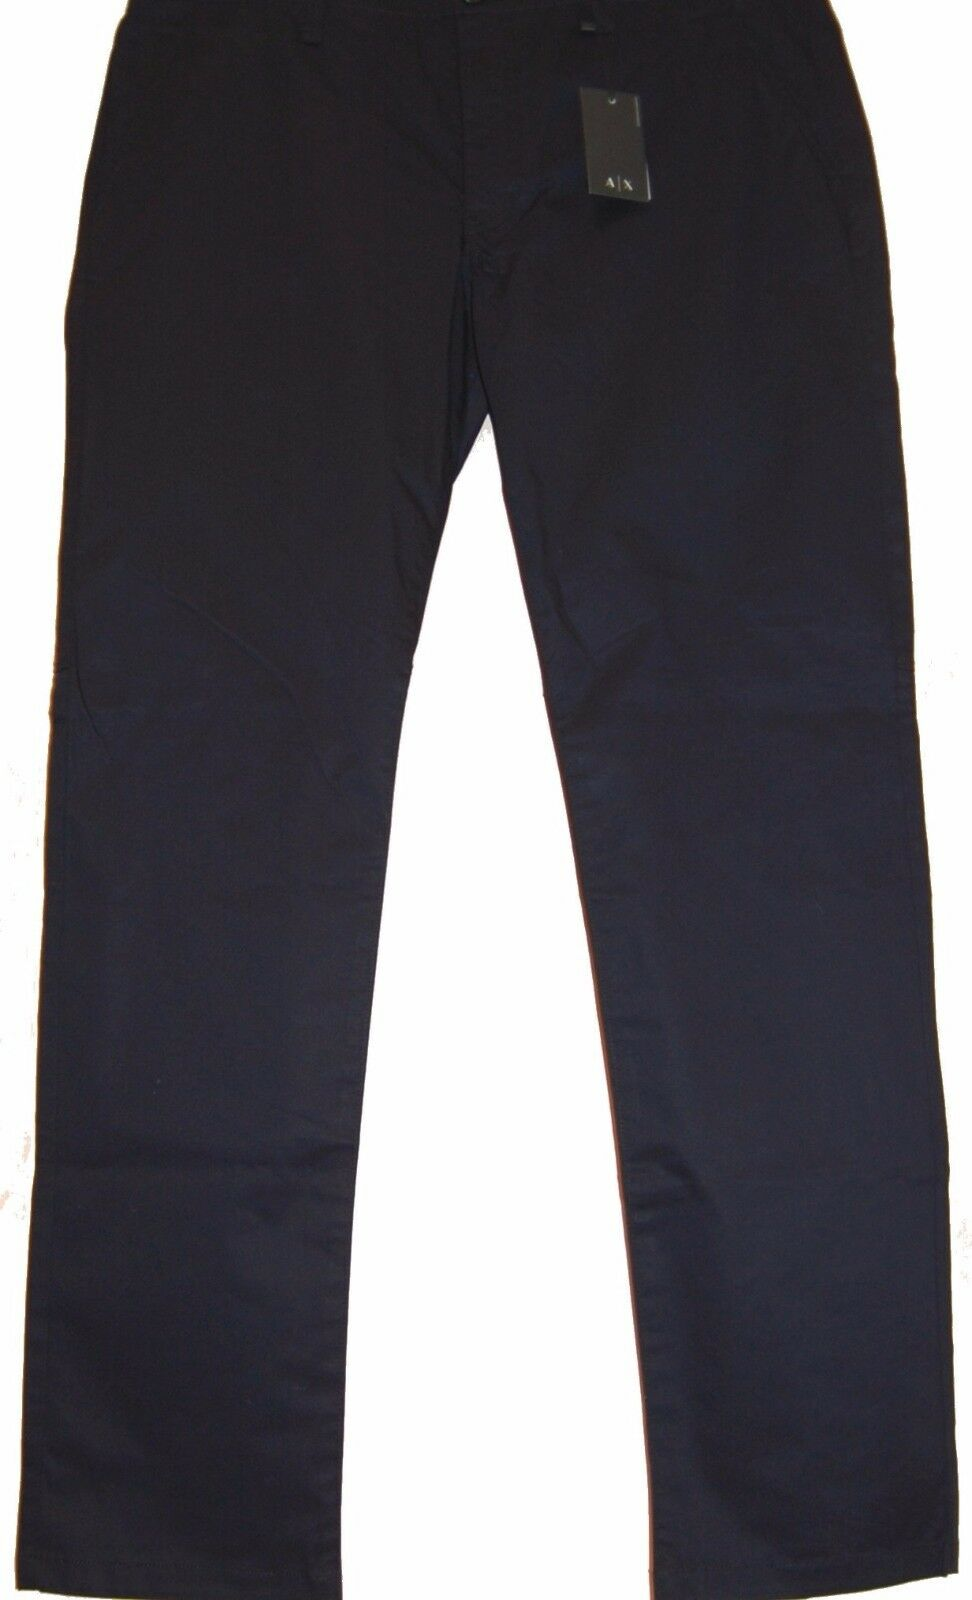 Armani Exchange Navy Men's Casual Stretch Pants Size 56 US NEW